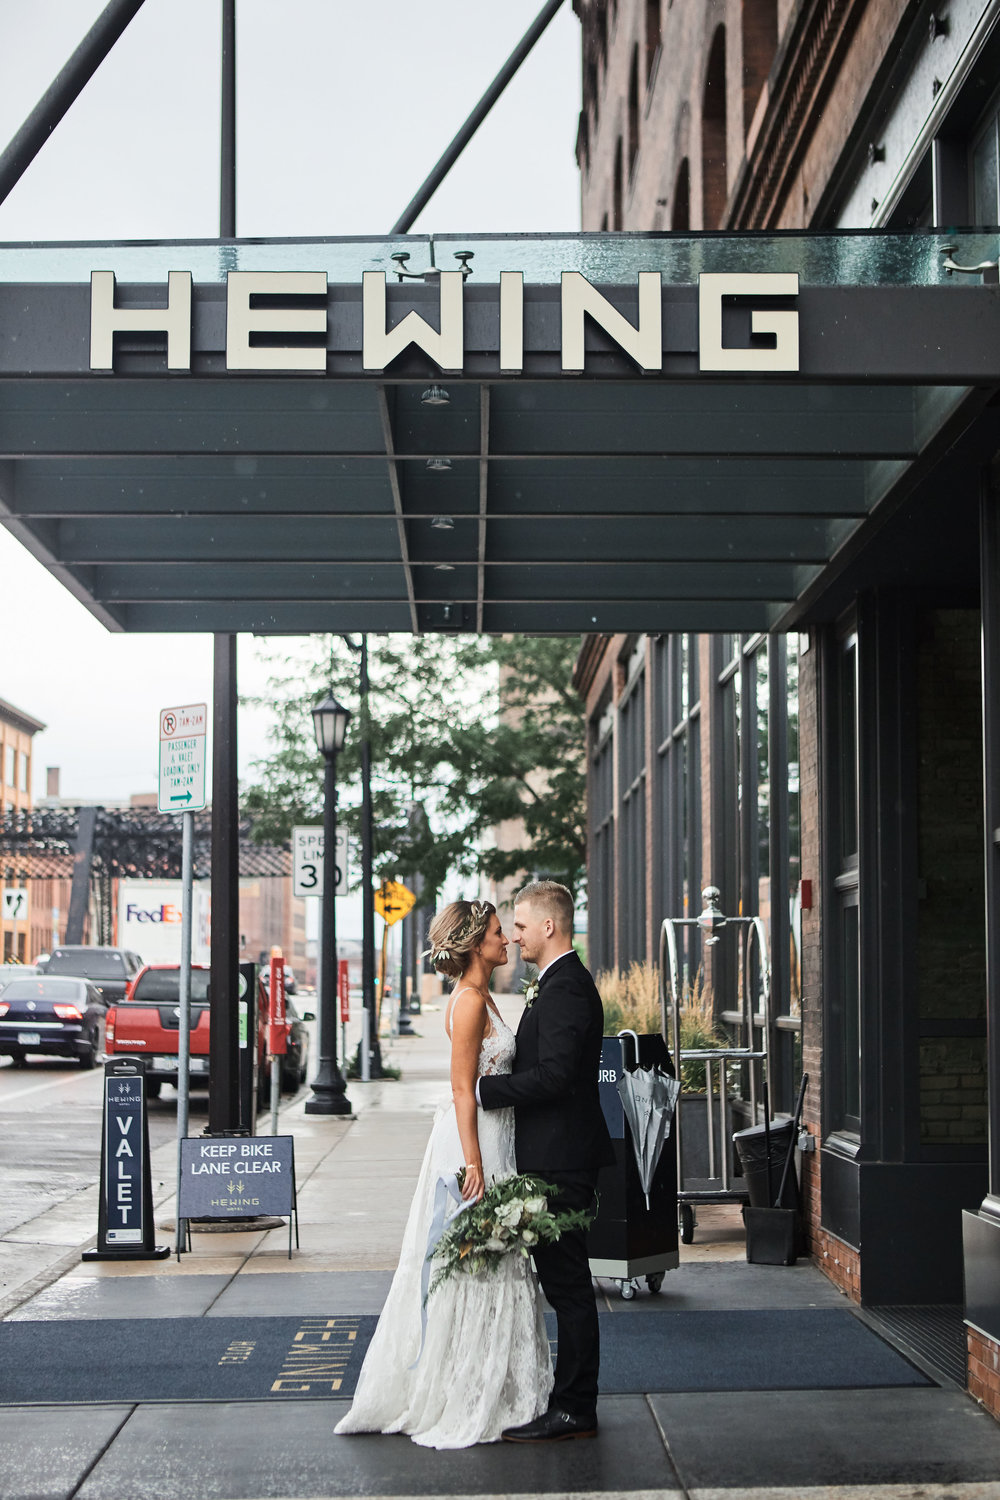 Hewing hotel wedding